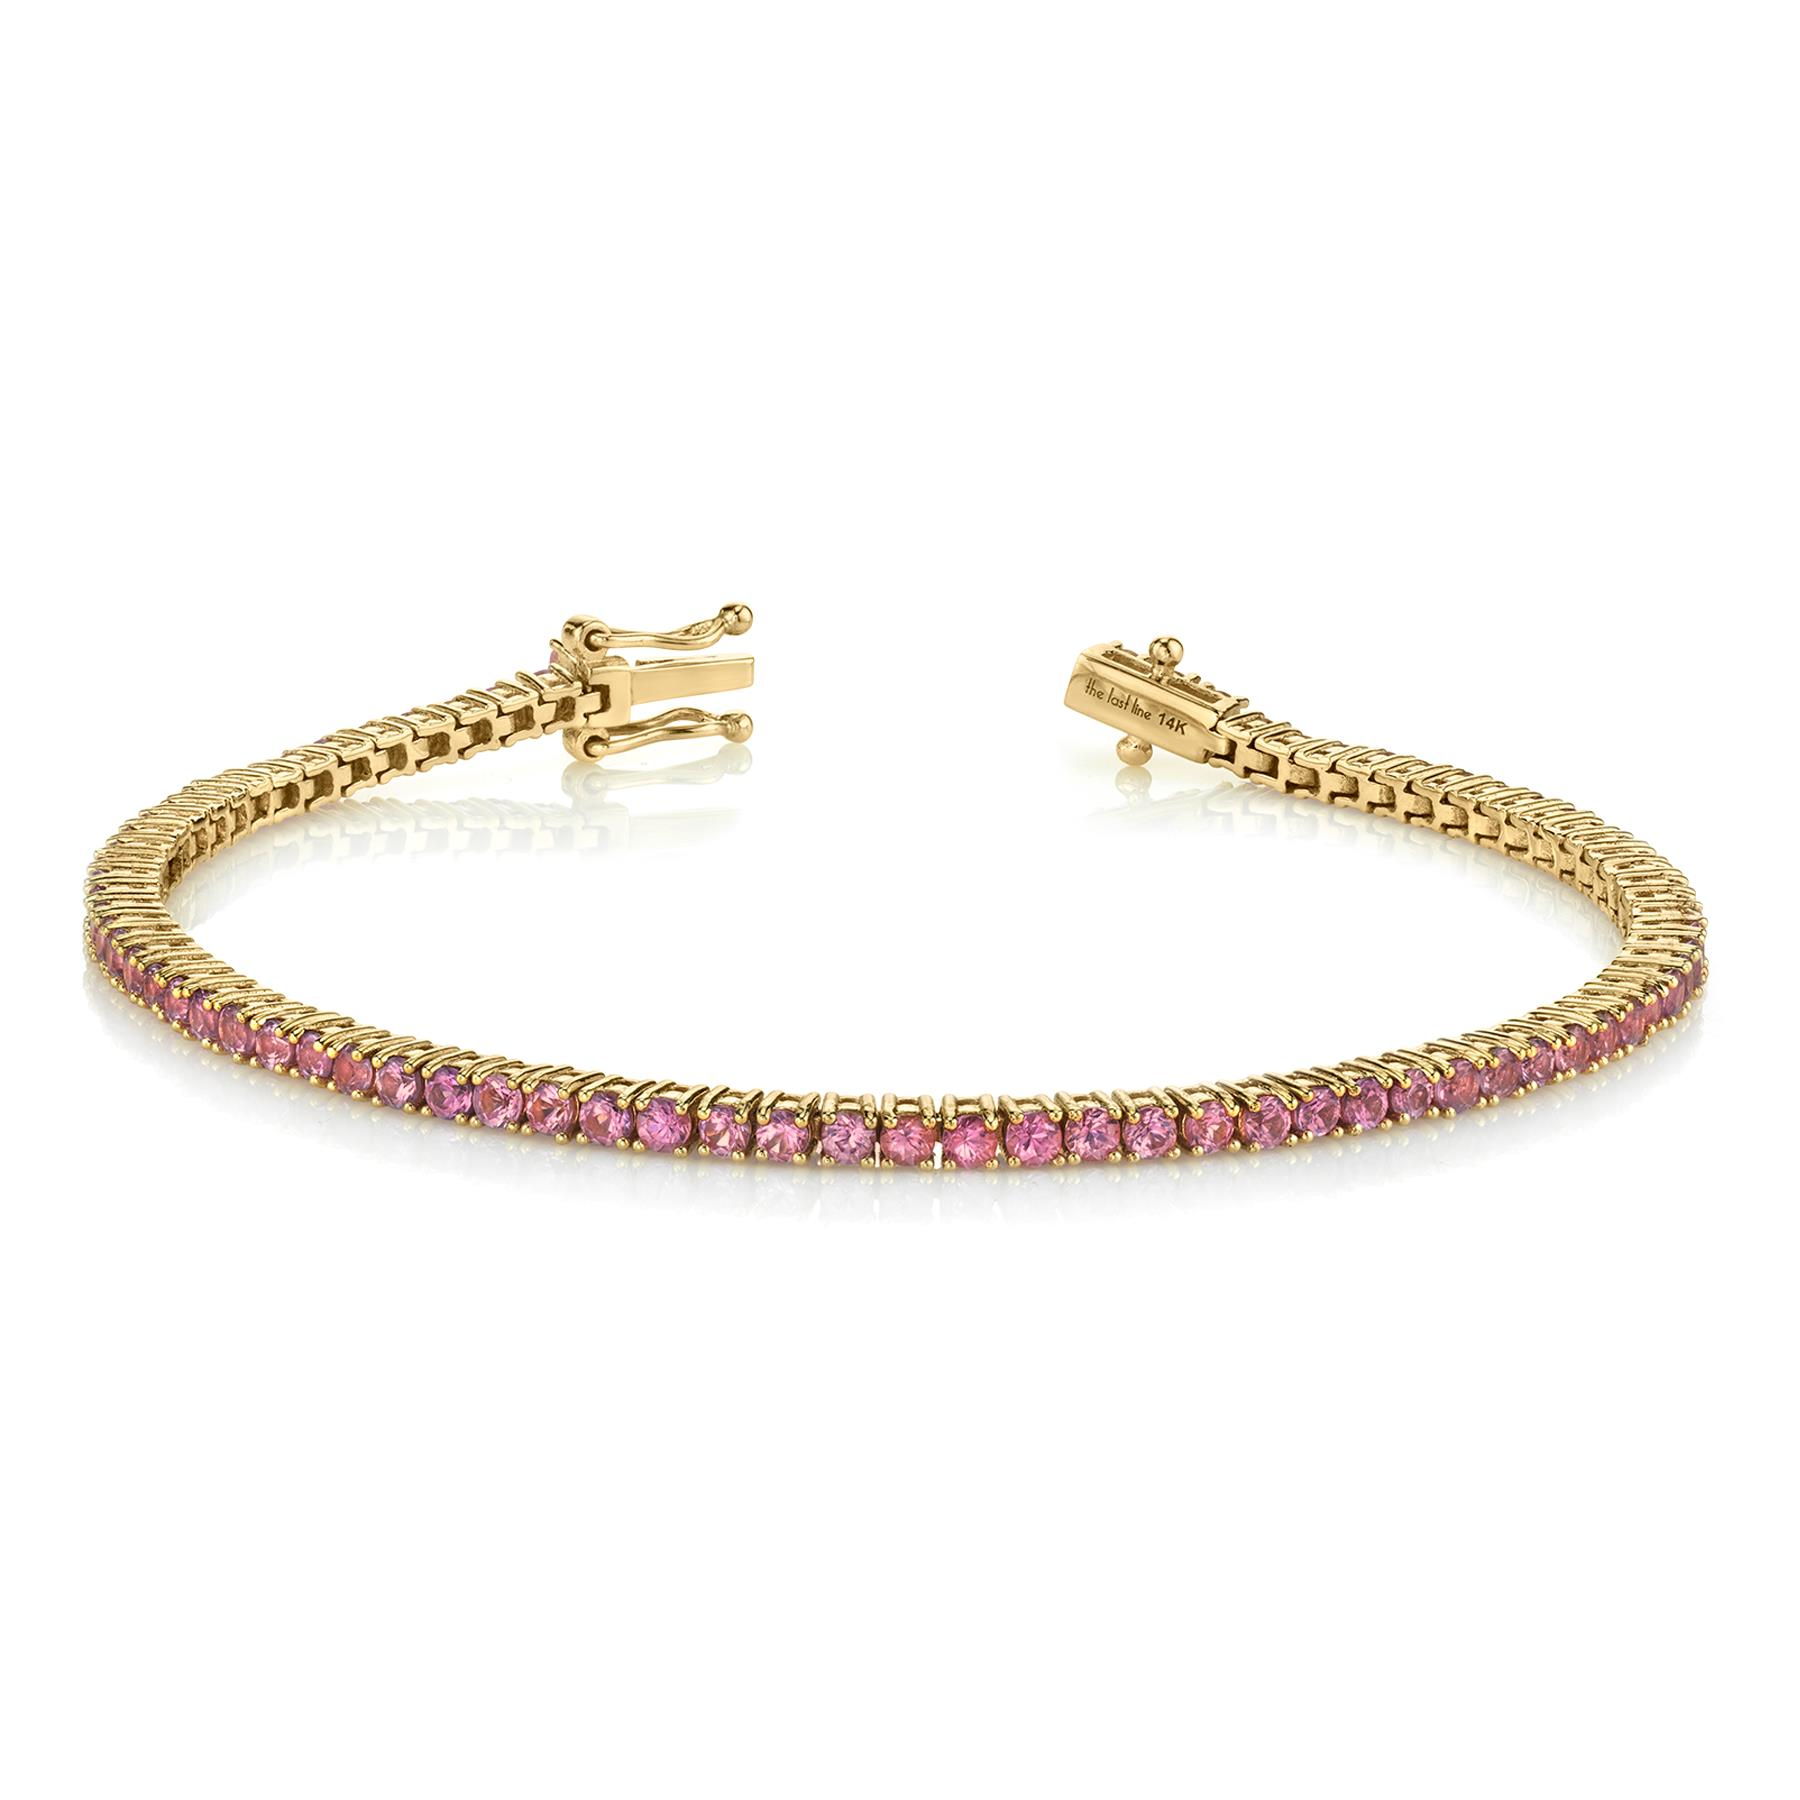 PERFECT PINK TOURMALINE TENNIS BRACELET